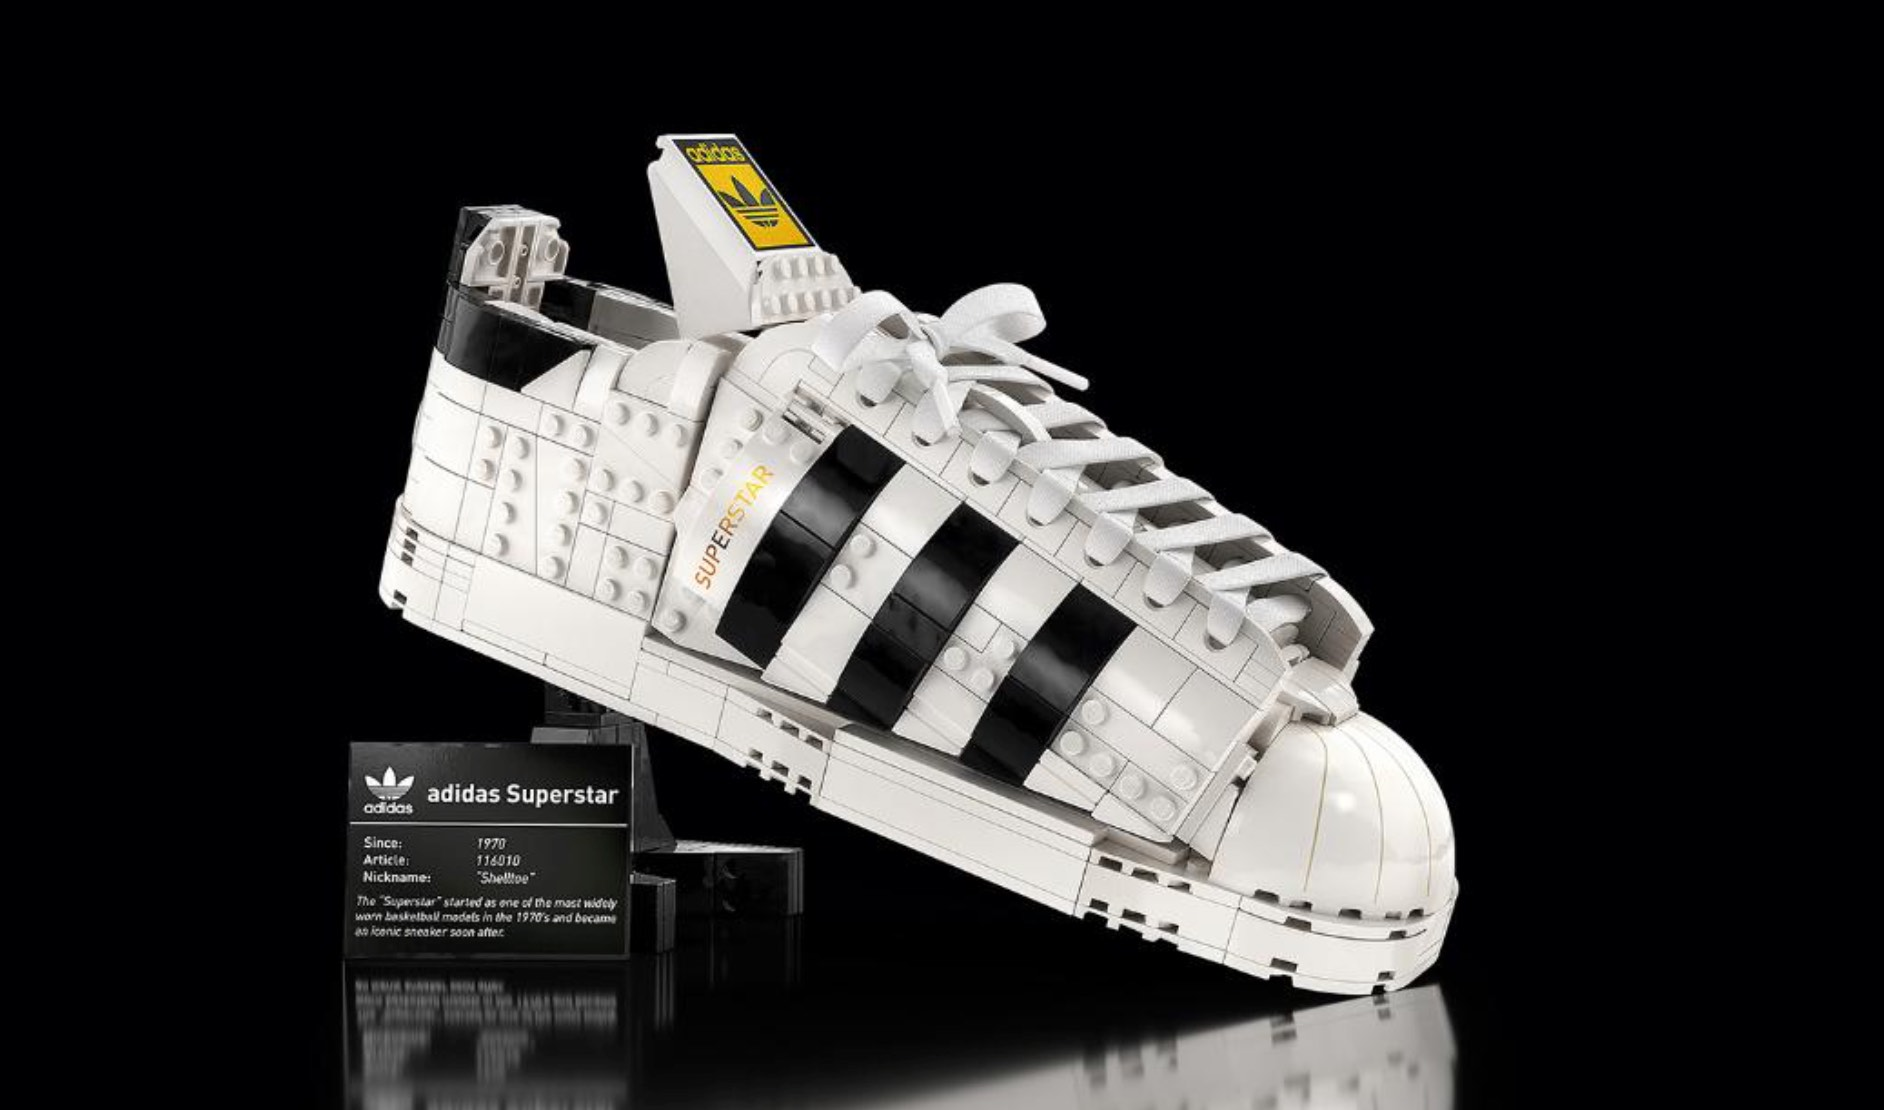 Check out LEGO's new model of Adidas Superstar sneakers